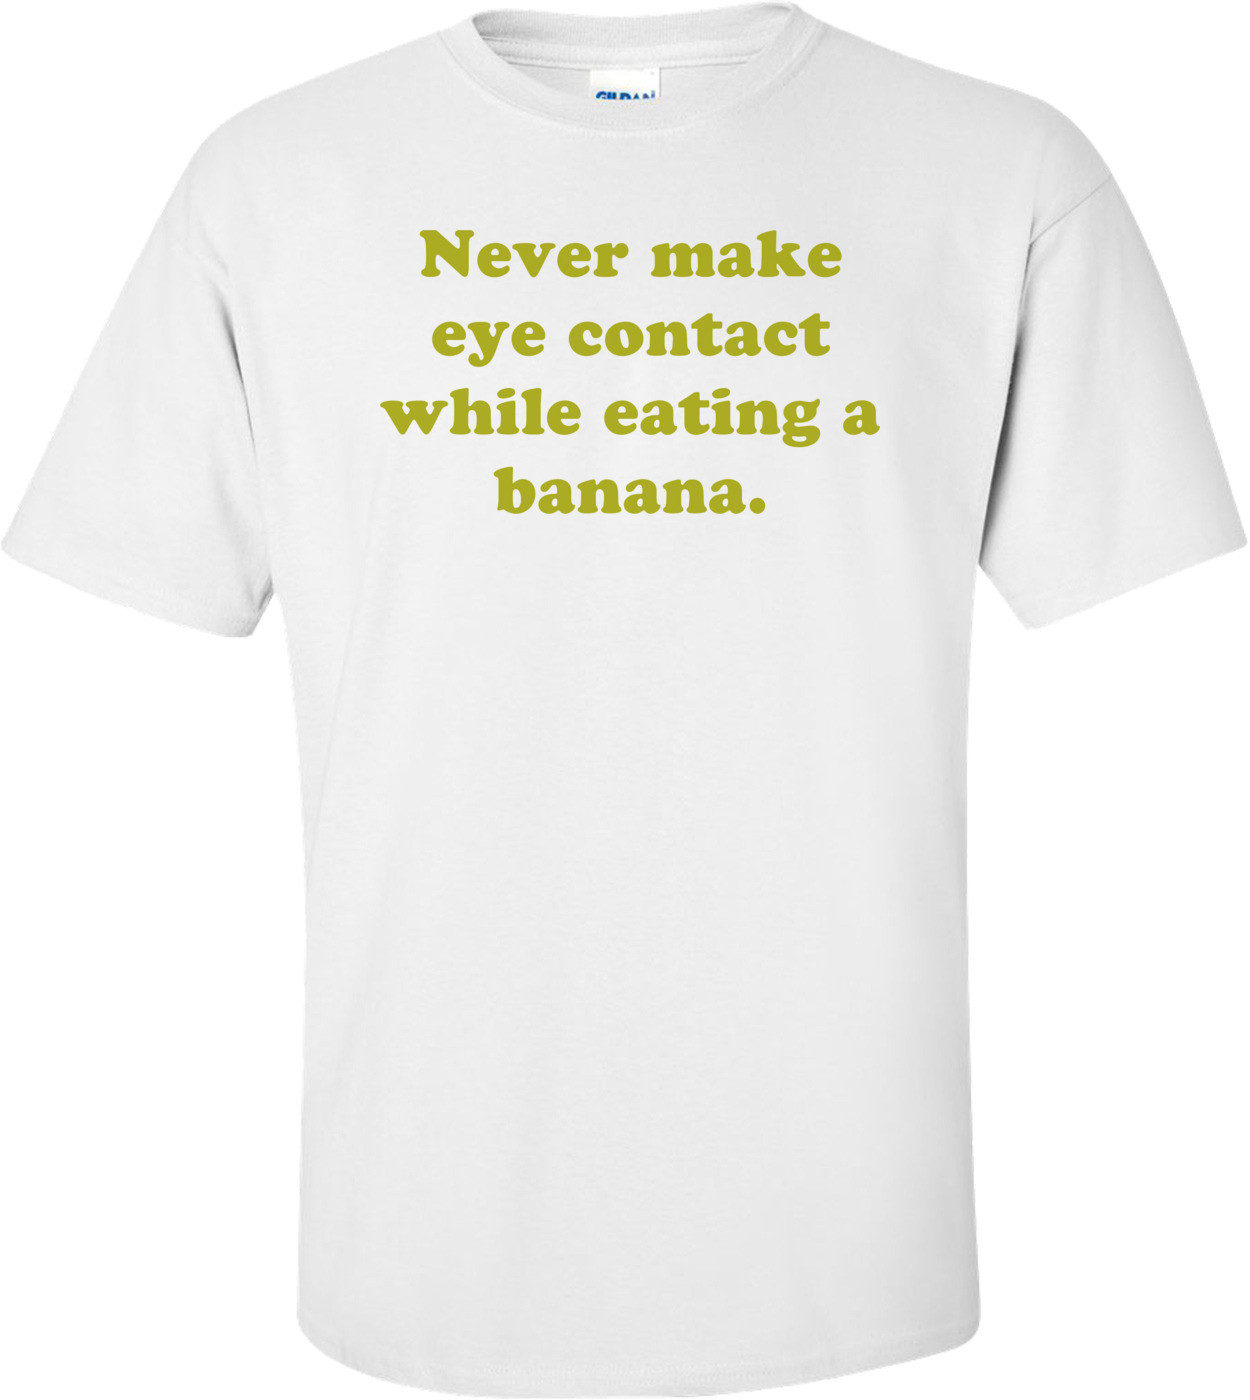 Never make eye contact while eating a banana. Shirt